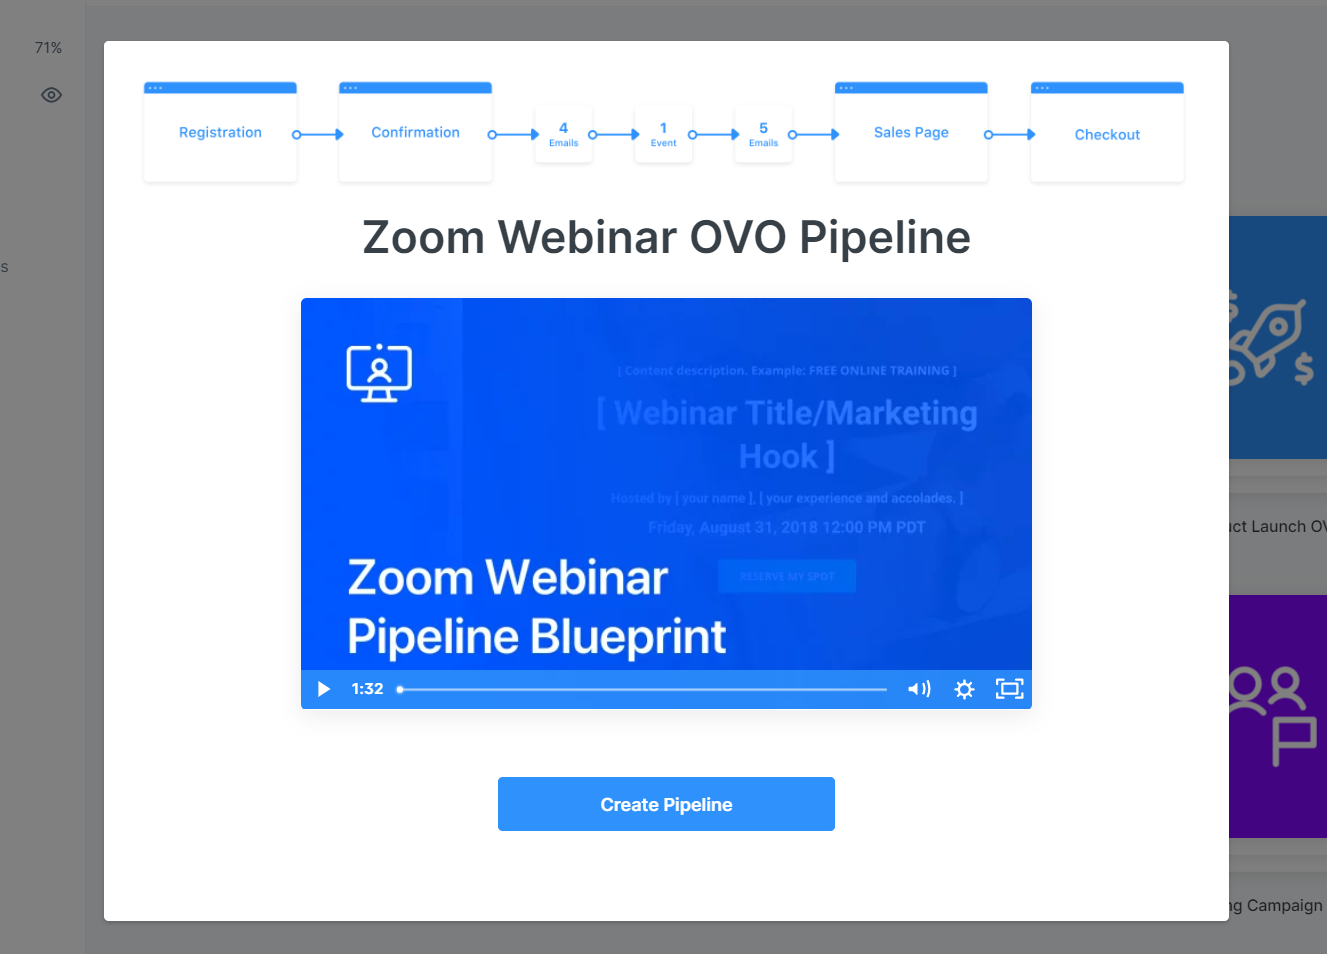 Screenshot of the Kajabi Zoom Webinar offer-value-offer pipeline with four emails, an event, five emails, a sales page, then checkout